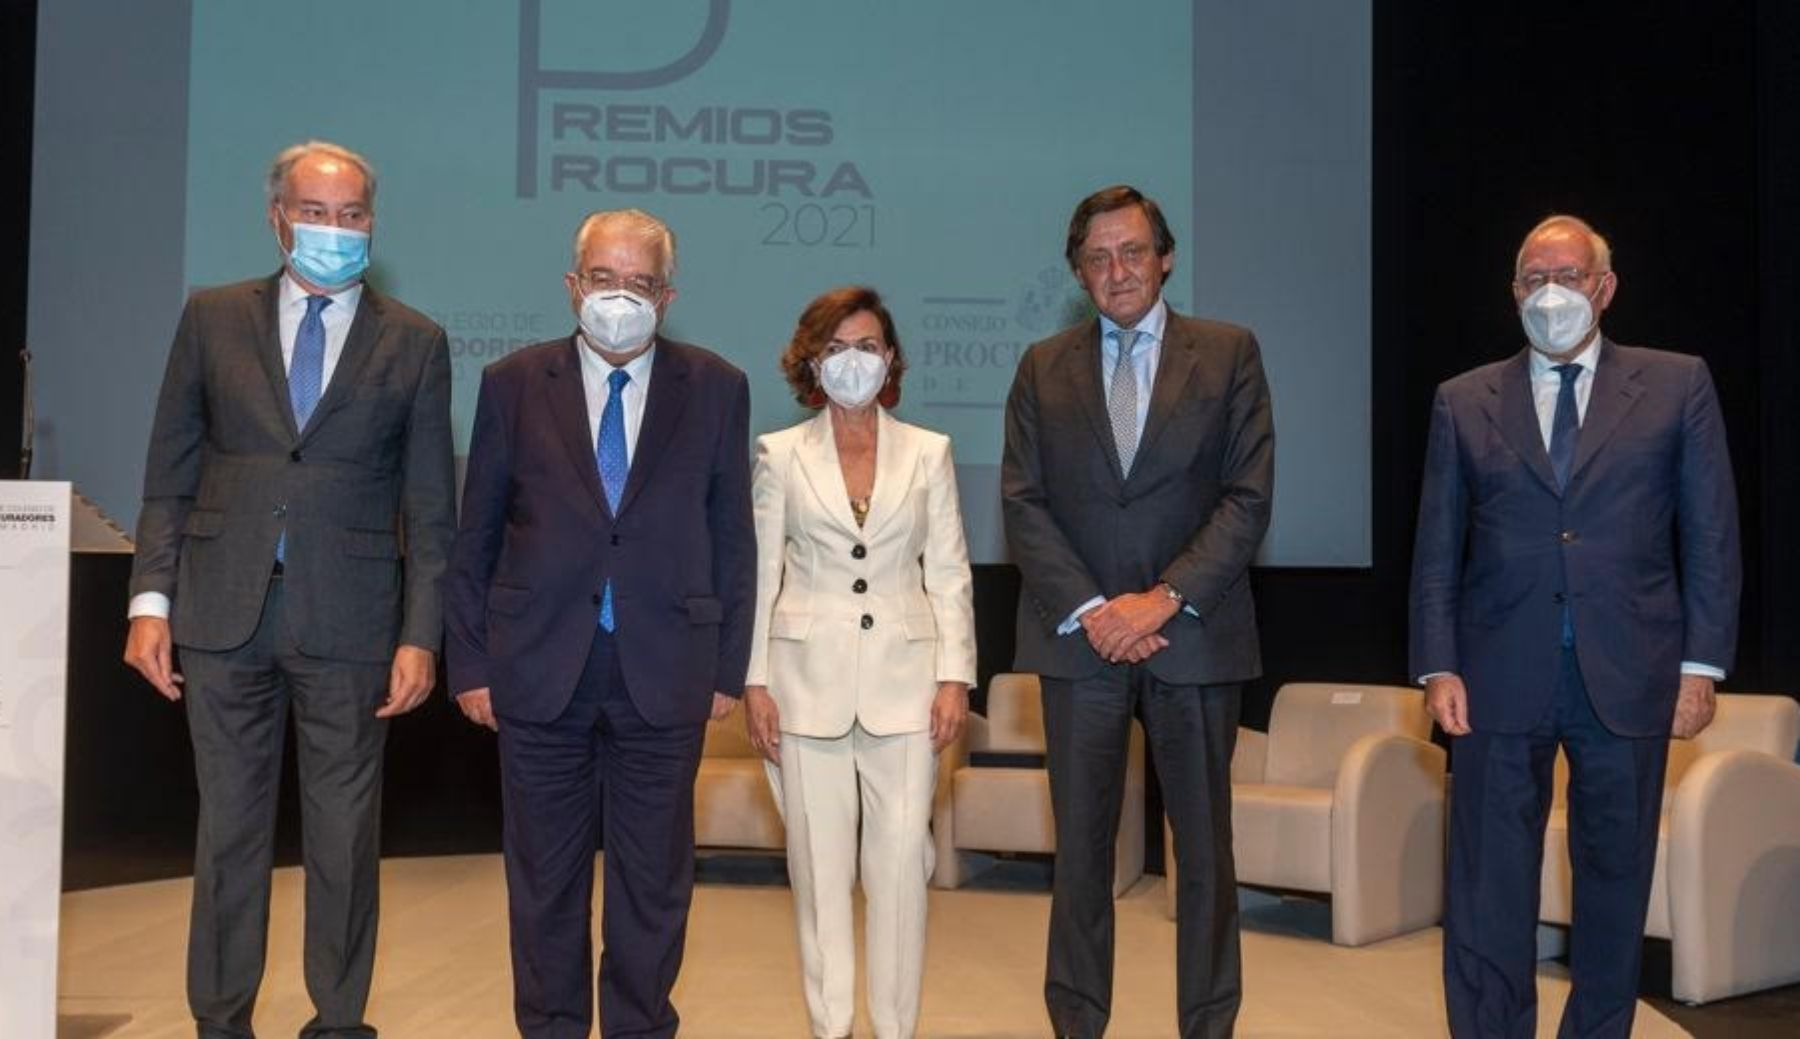 Juan Carlos Estévez calls for a better coexistence and a great political agreement in Spain